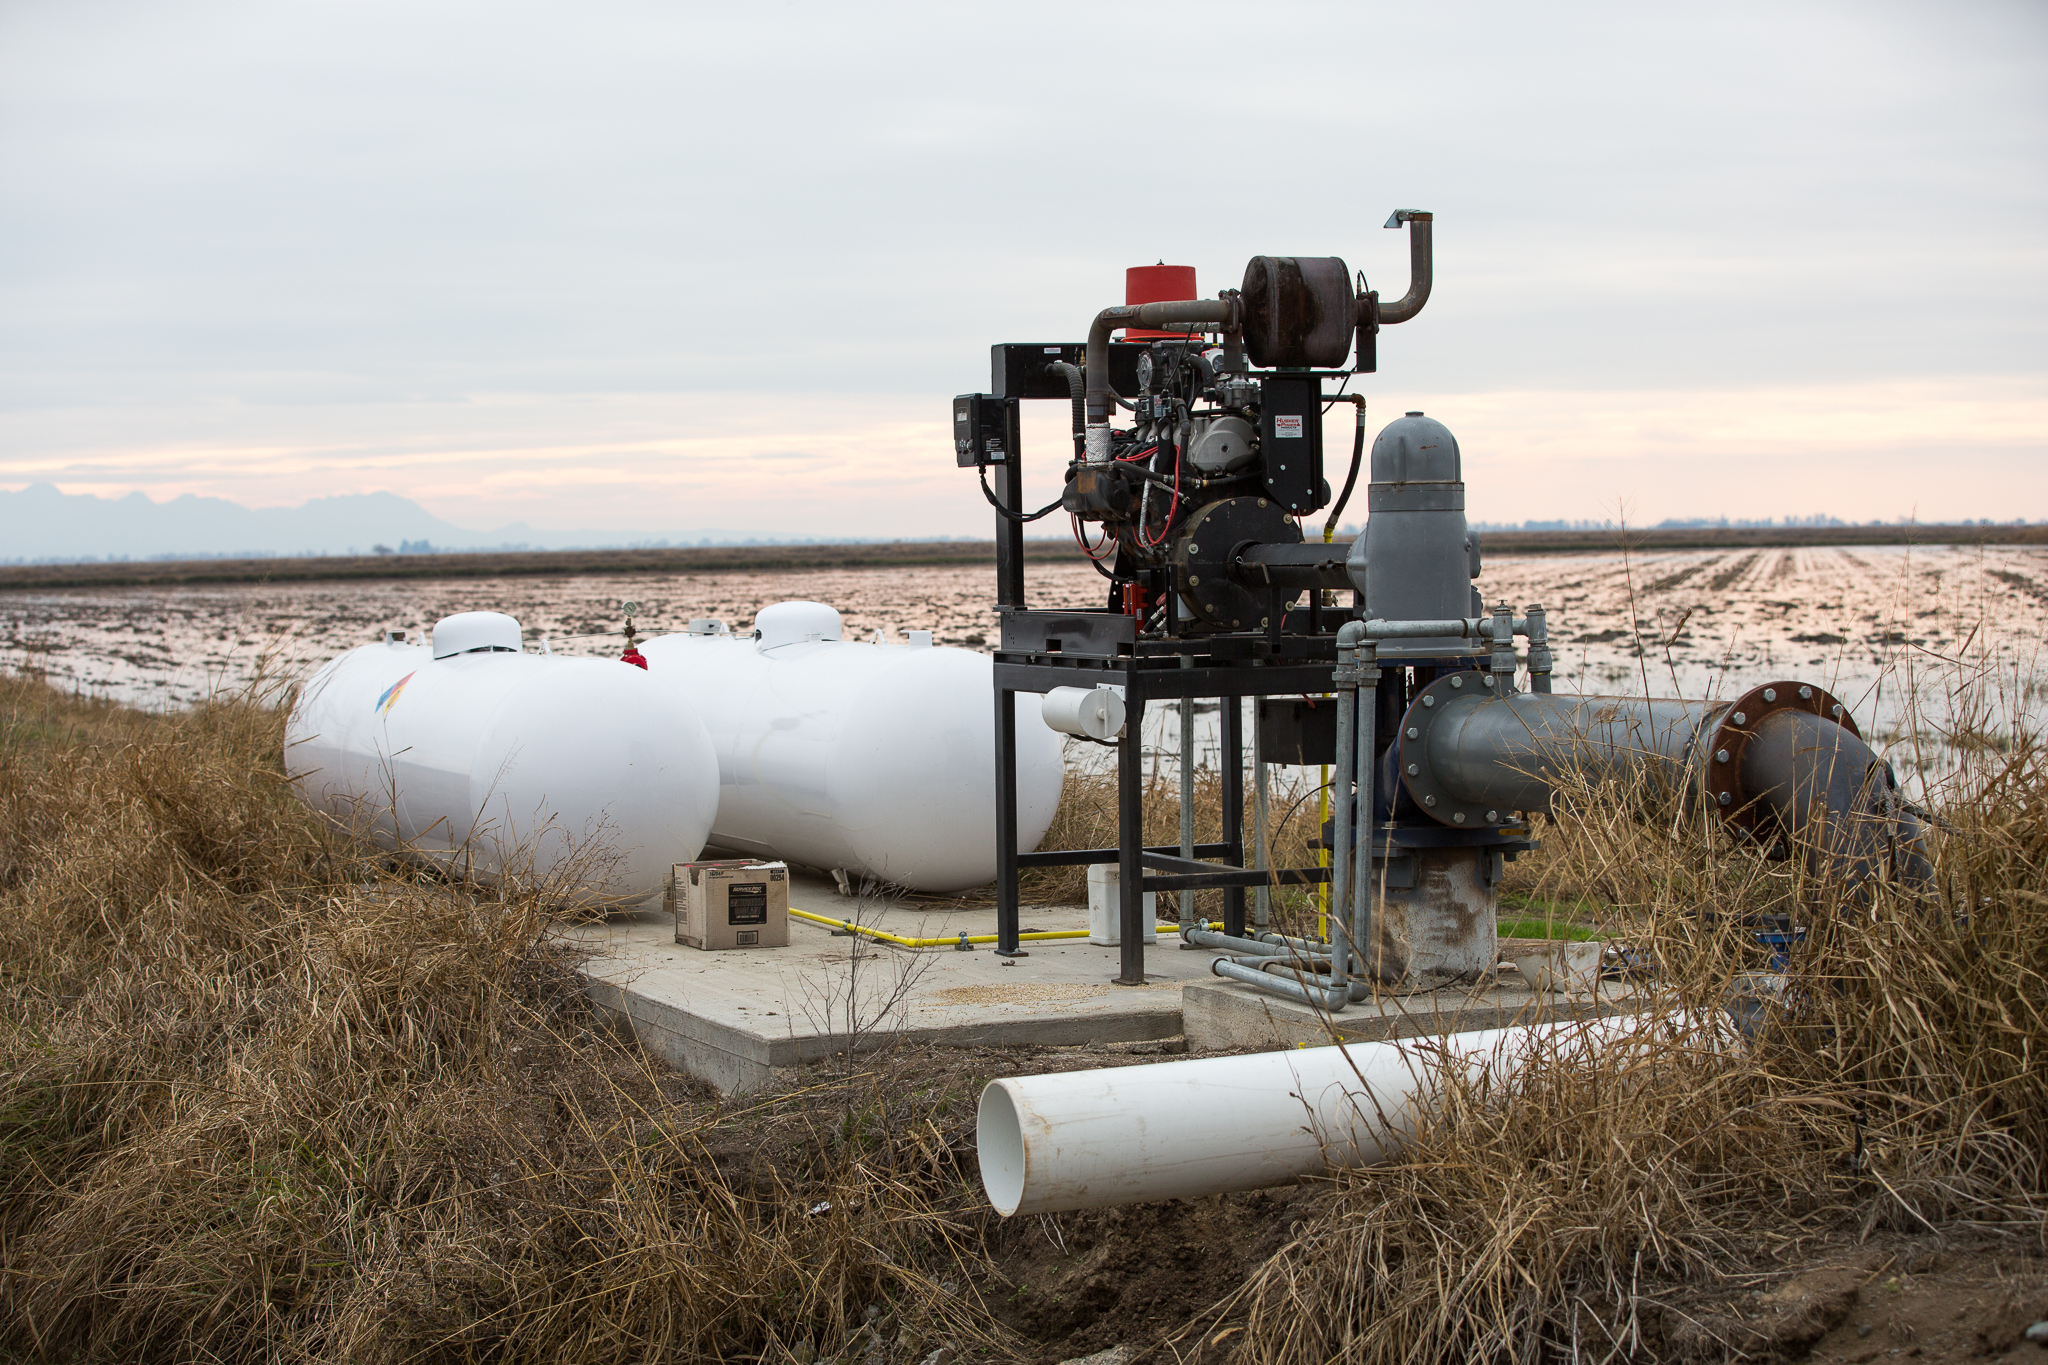 Irrigation pumps like this one pull water from a canal and deliver it onto nearby rice fields. Farmers (and wildlife managers) monitor water levels and adjust according to seasonal needs, including the presence of migratory birds.